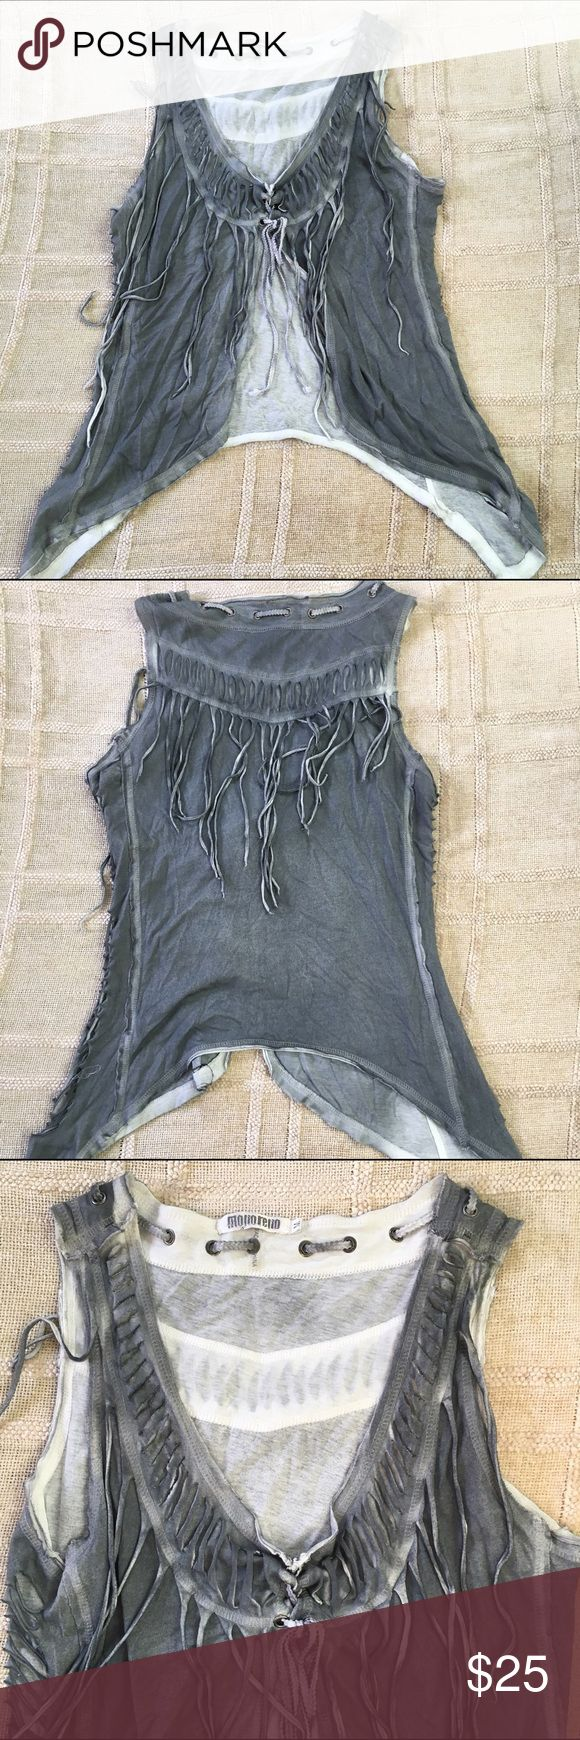 Fringe Festival Top Fringed top. Slits in sides. Perfect for festivals!! Monoreno Tops